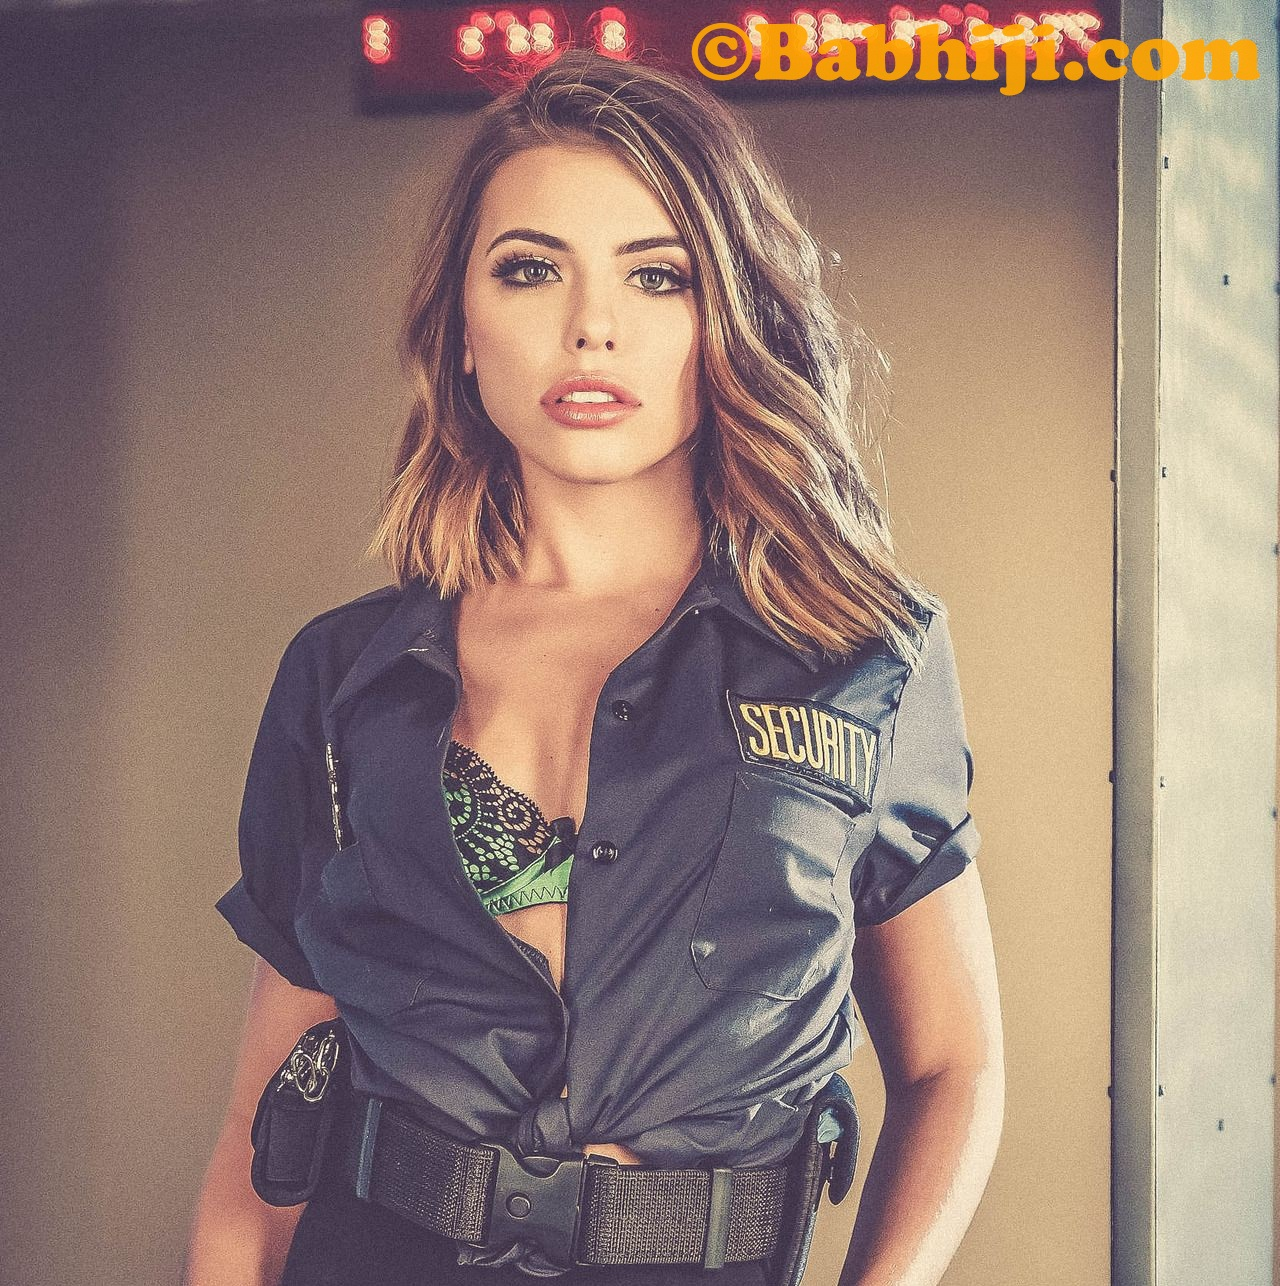 Instagram Adriana Chechik naked (45 photo), Topless, Cleavage, Twitter, braless 2018